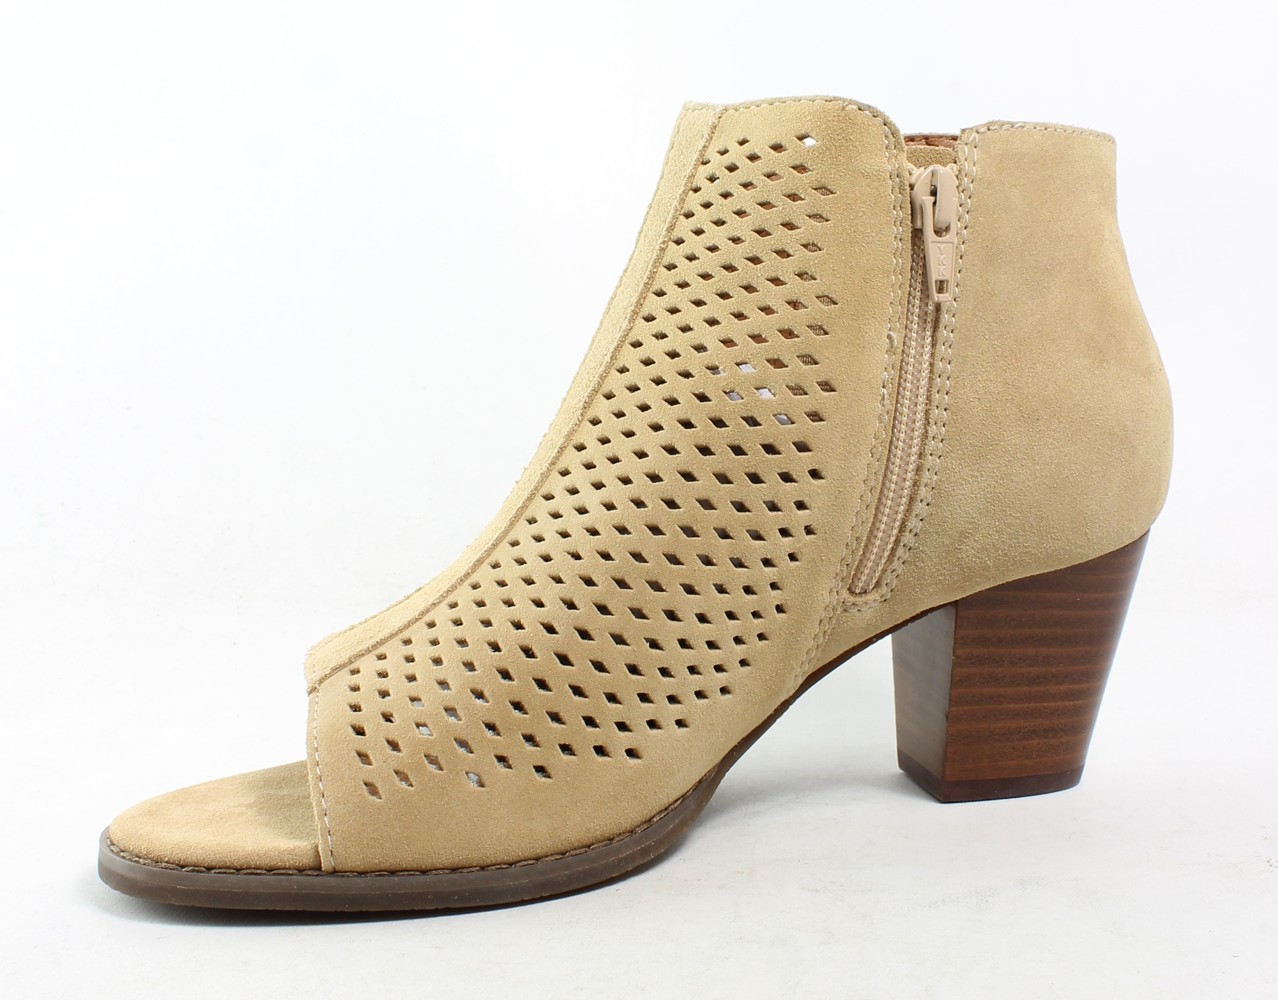 Vionic-Womens-Aloft-Chryssa-Suede-Open-Toe-Fashion-Ankle-Zip-Boots thumbnail 14